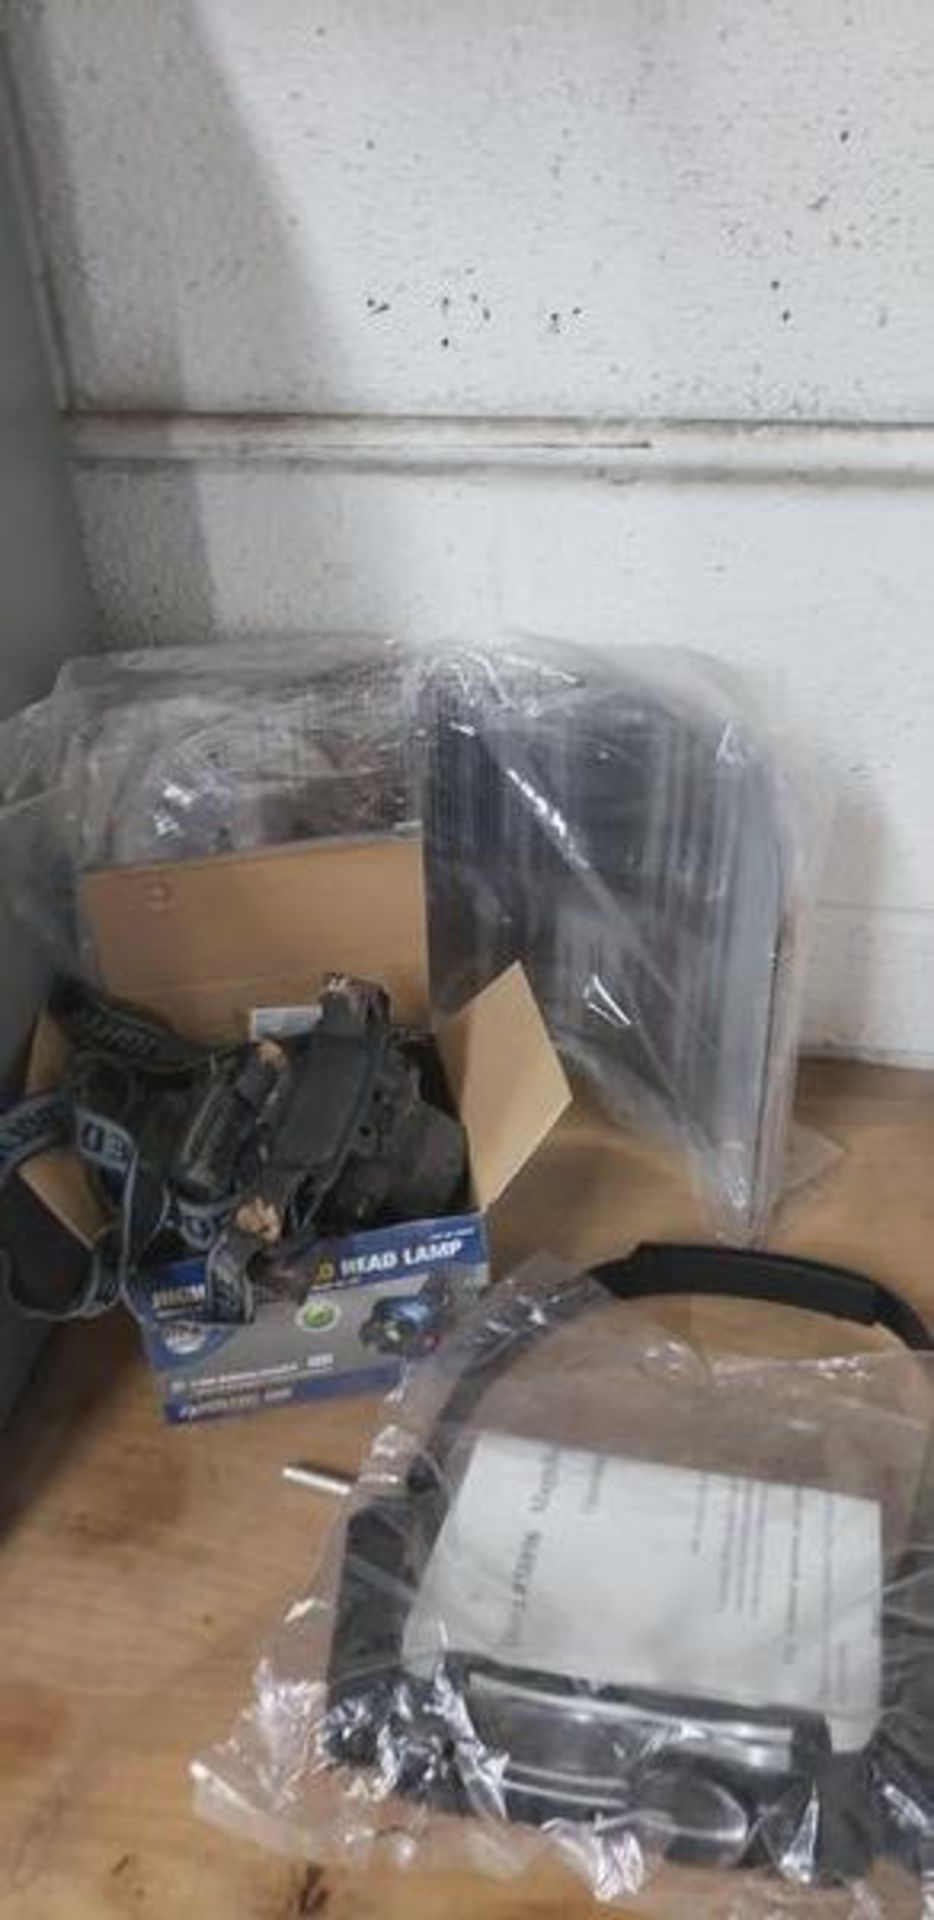 LOT OF HEAD BAND LIGHTS, MAGNIFIER AND FACE SHIELDS - Image 4 of 4